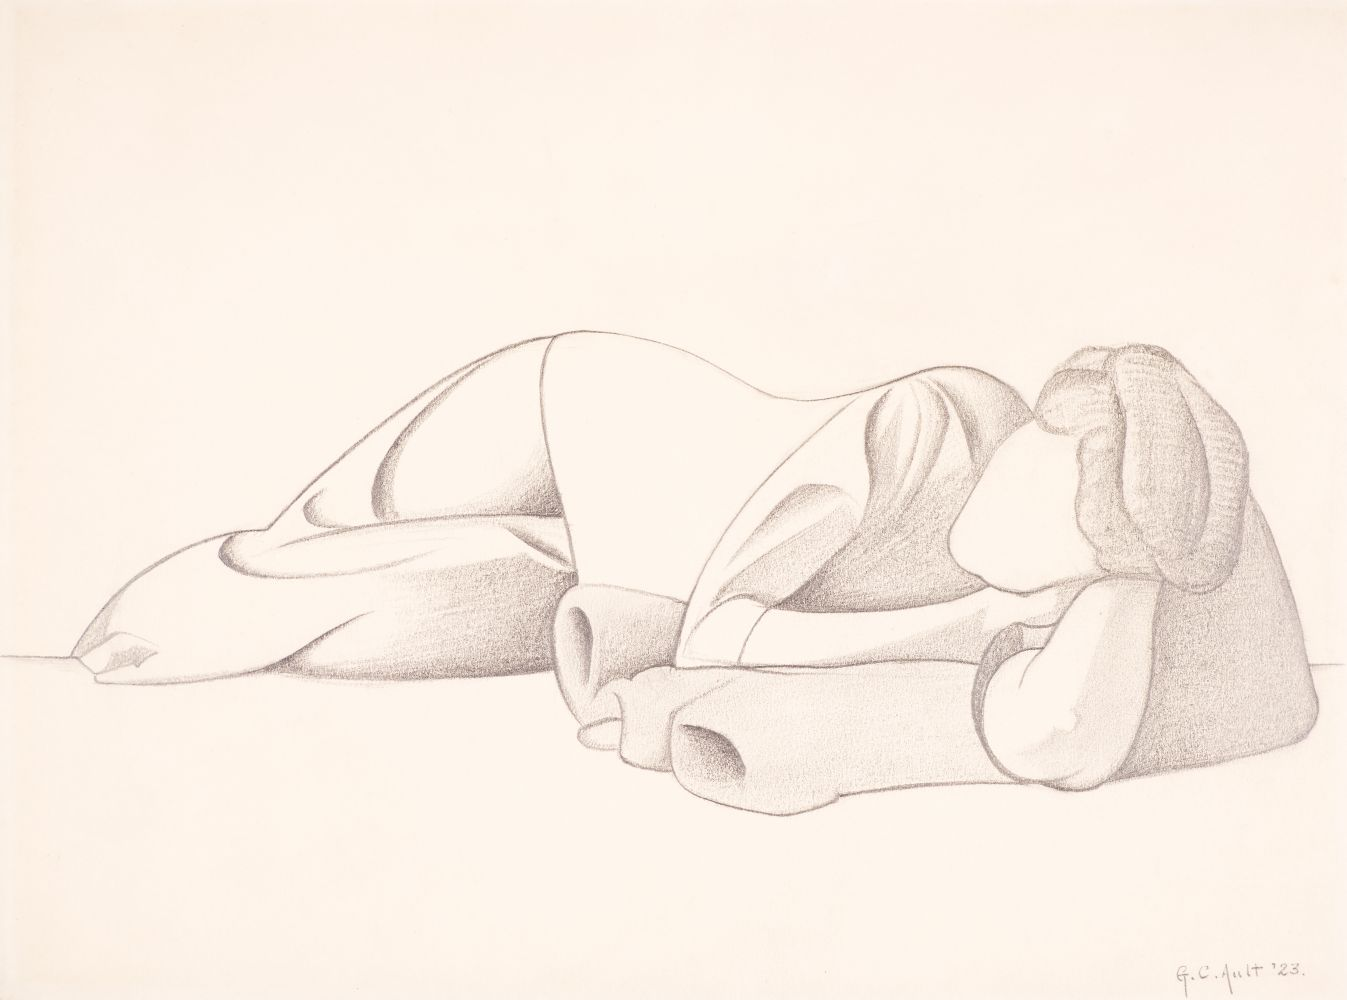 George C. Ault (1891–1948), Reclining Figure, 1923, pencil on paper, 8 ⅞ x 11 ⅞ in., signed and dated lower right: George C. Ault '23 Inscribed in pencil on verso: 135 –